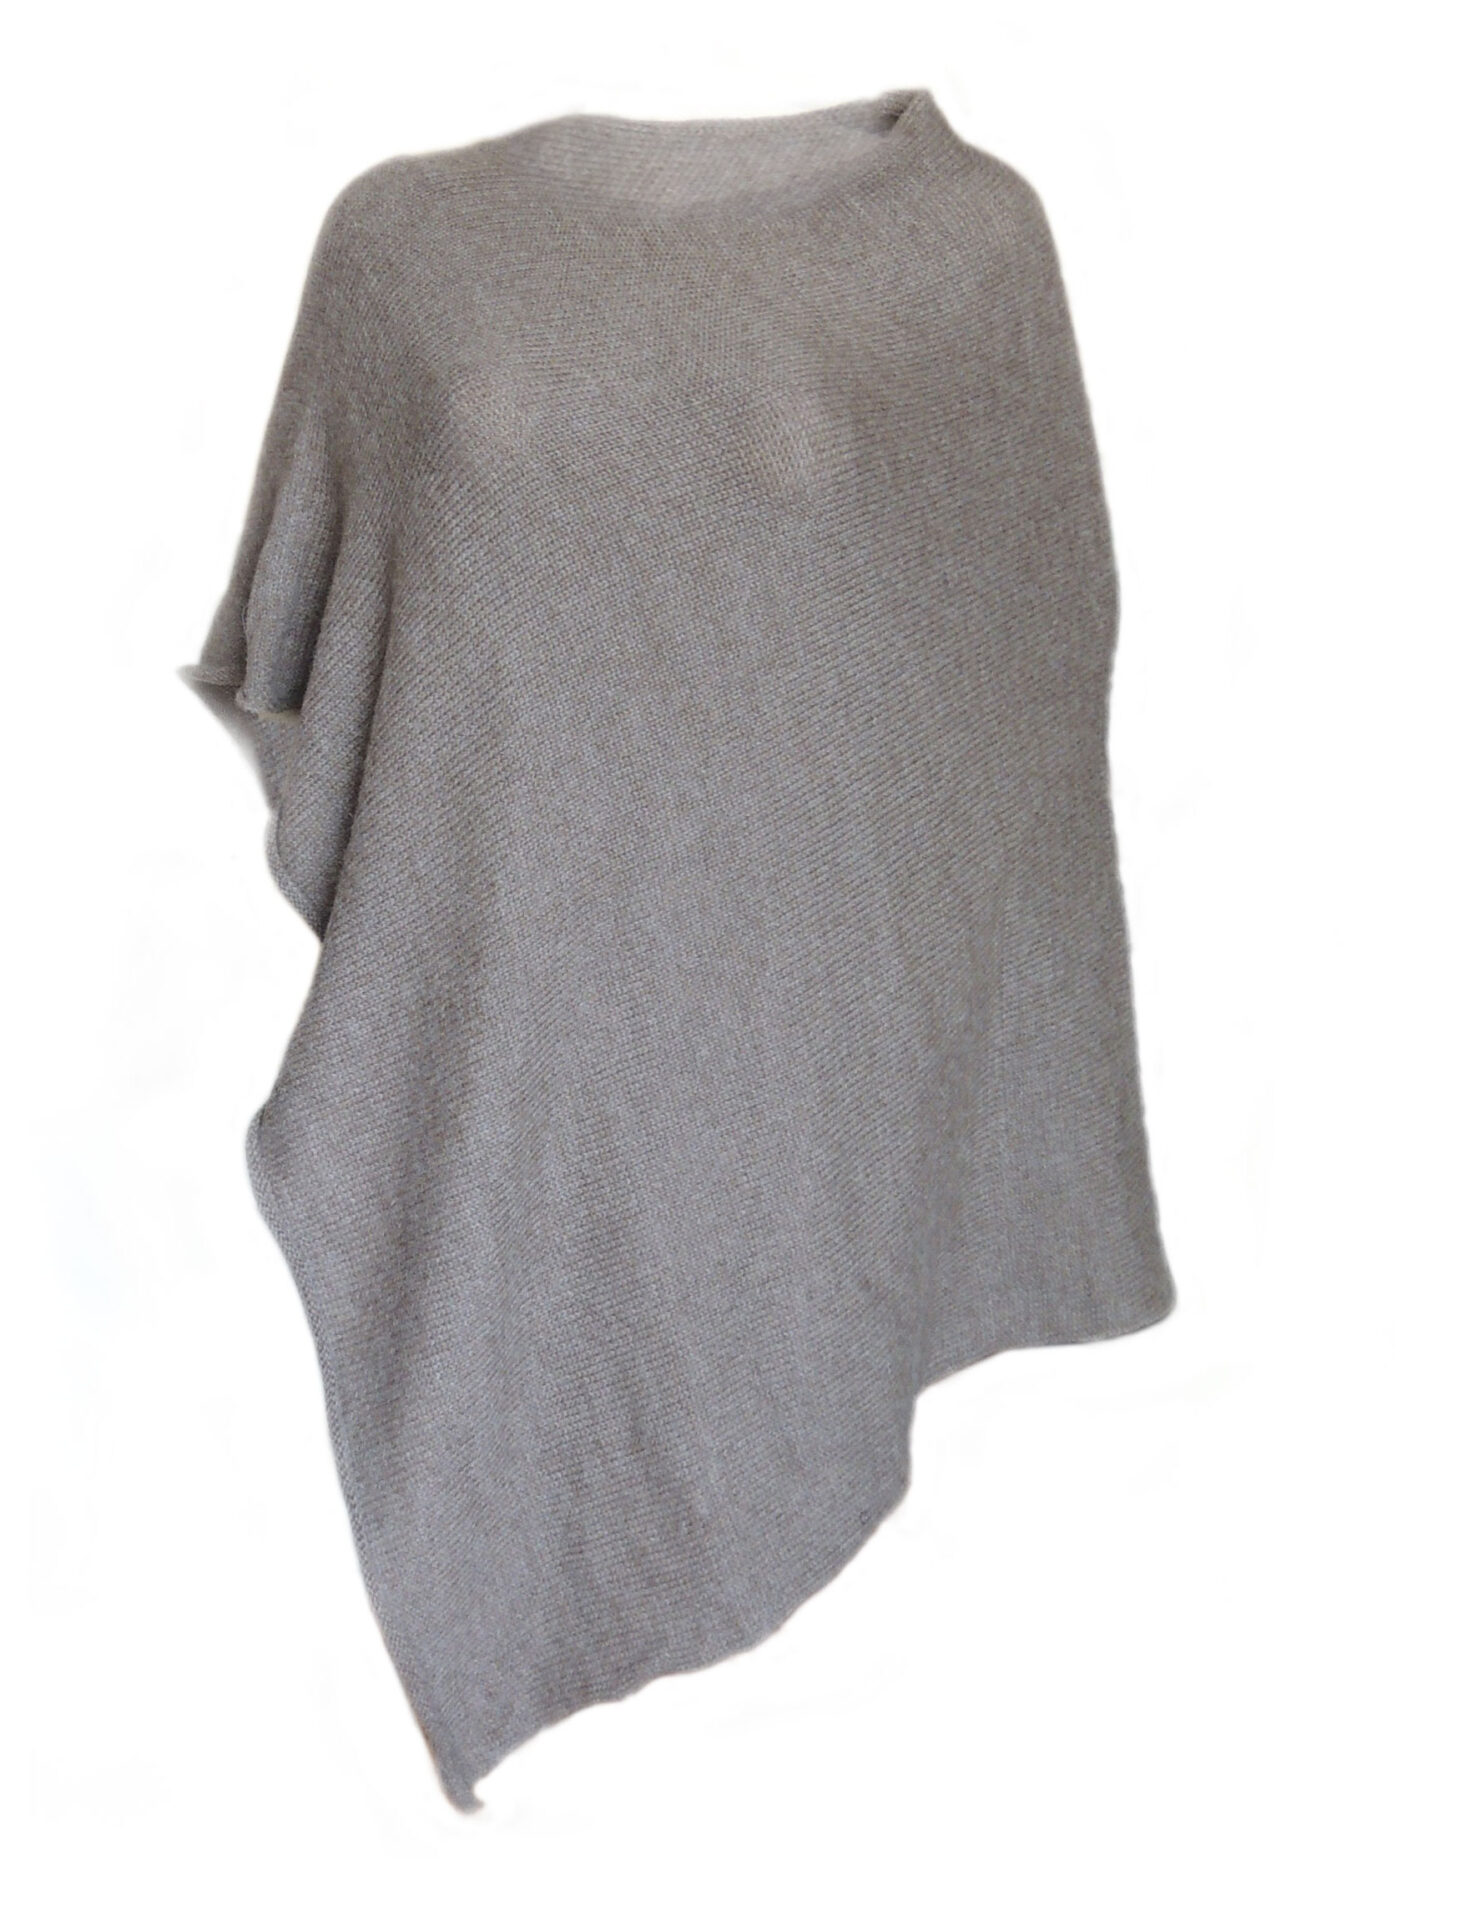 PFL knits, asymmetric poncho with a round neckline in solid color. 100% alpaca